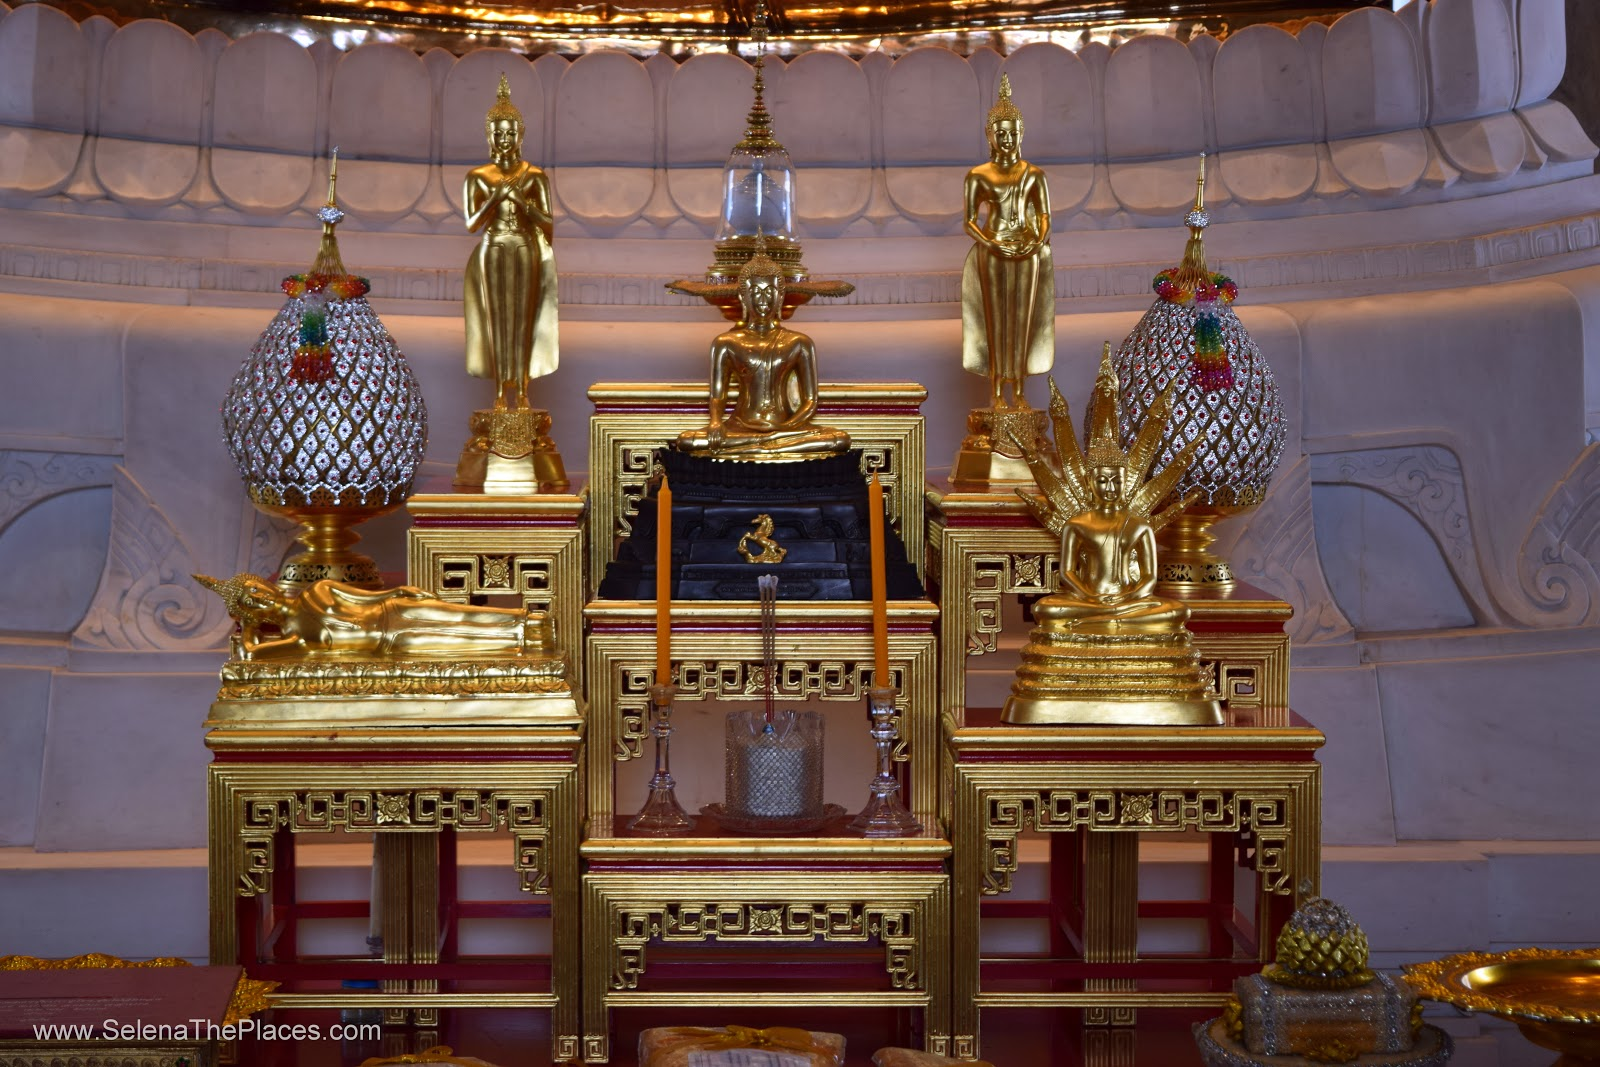 Golden Buddha of Wat Traimit Bangkok Thailand